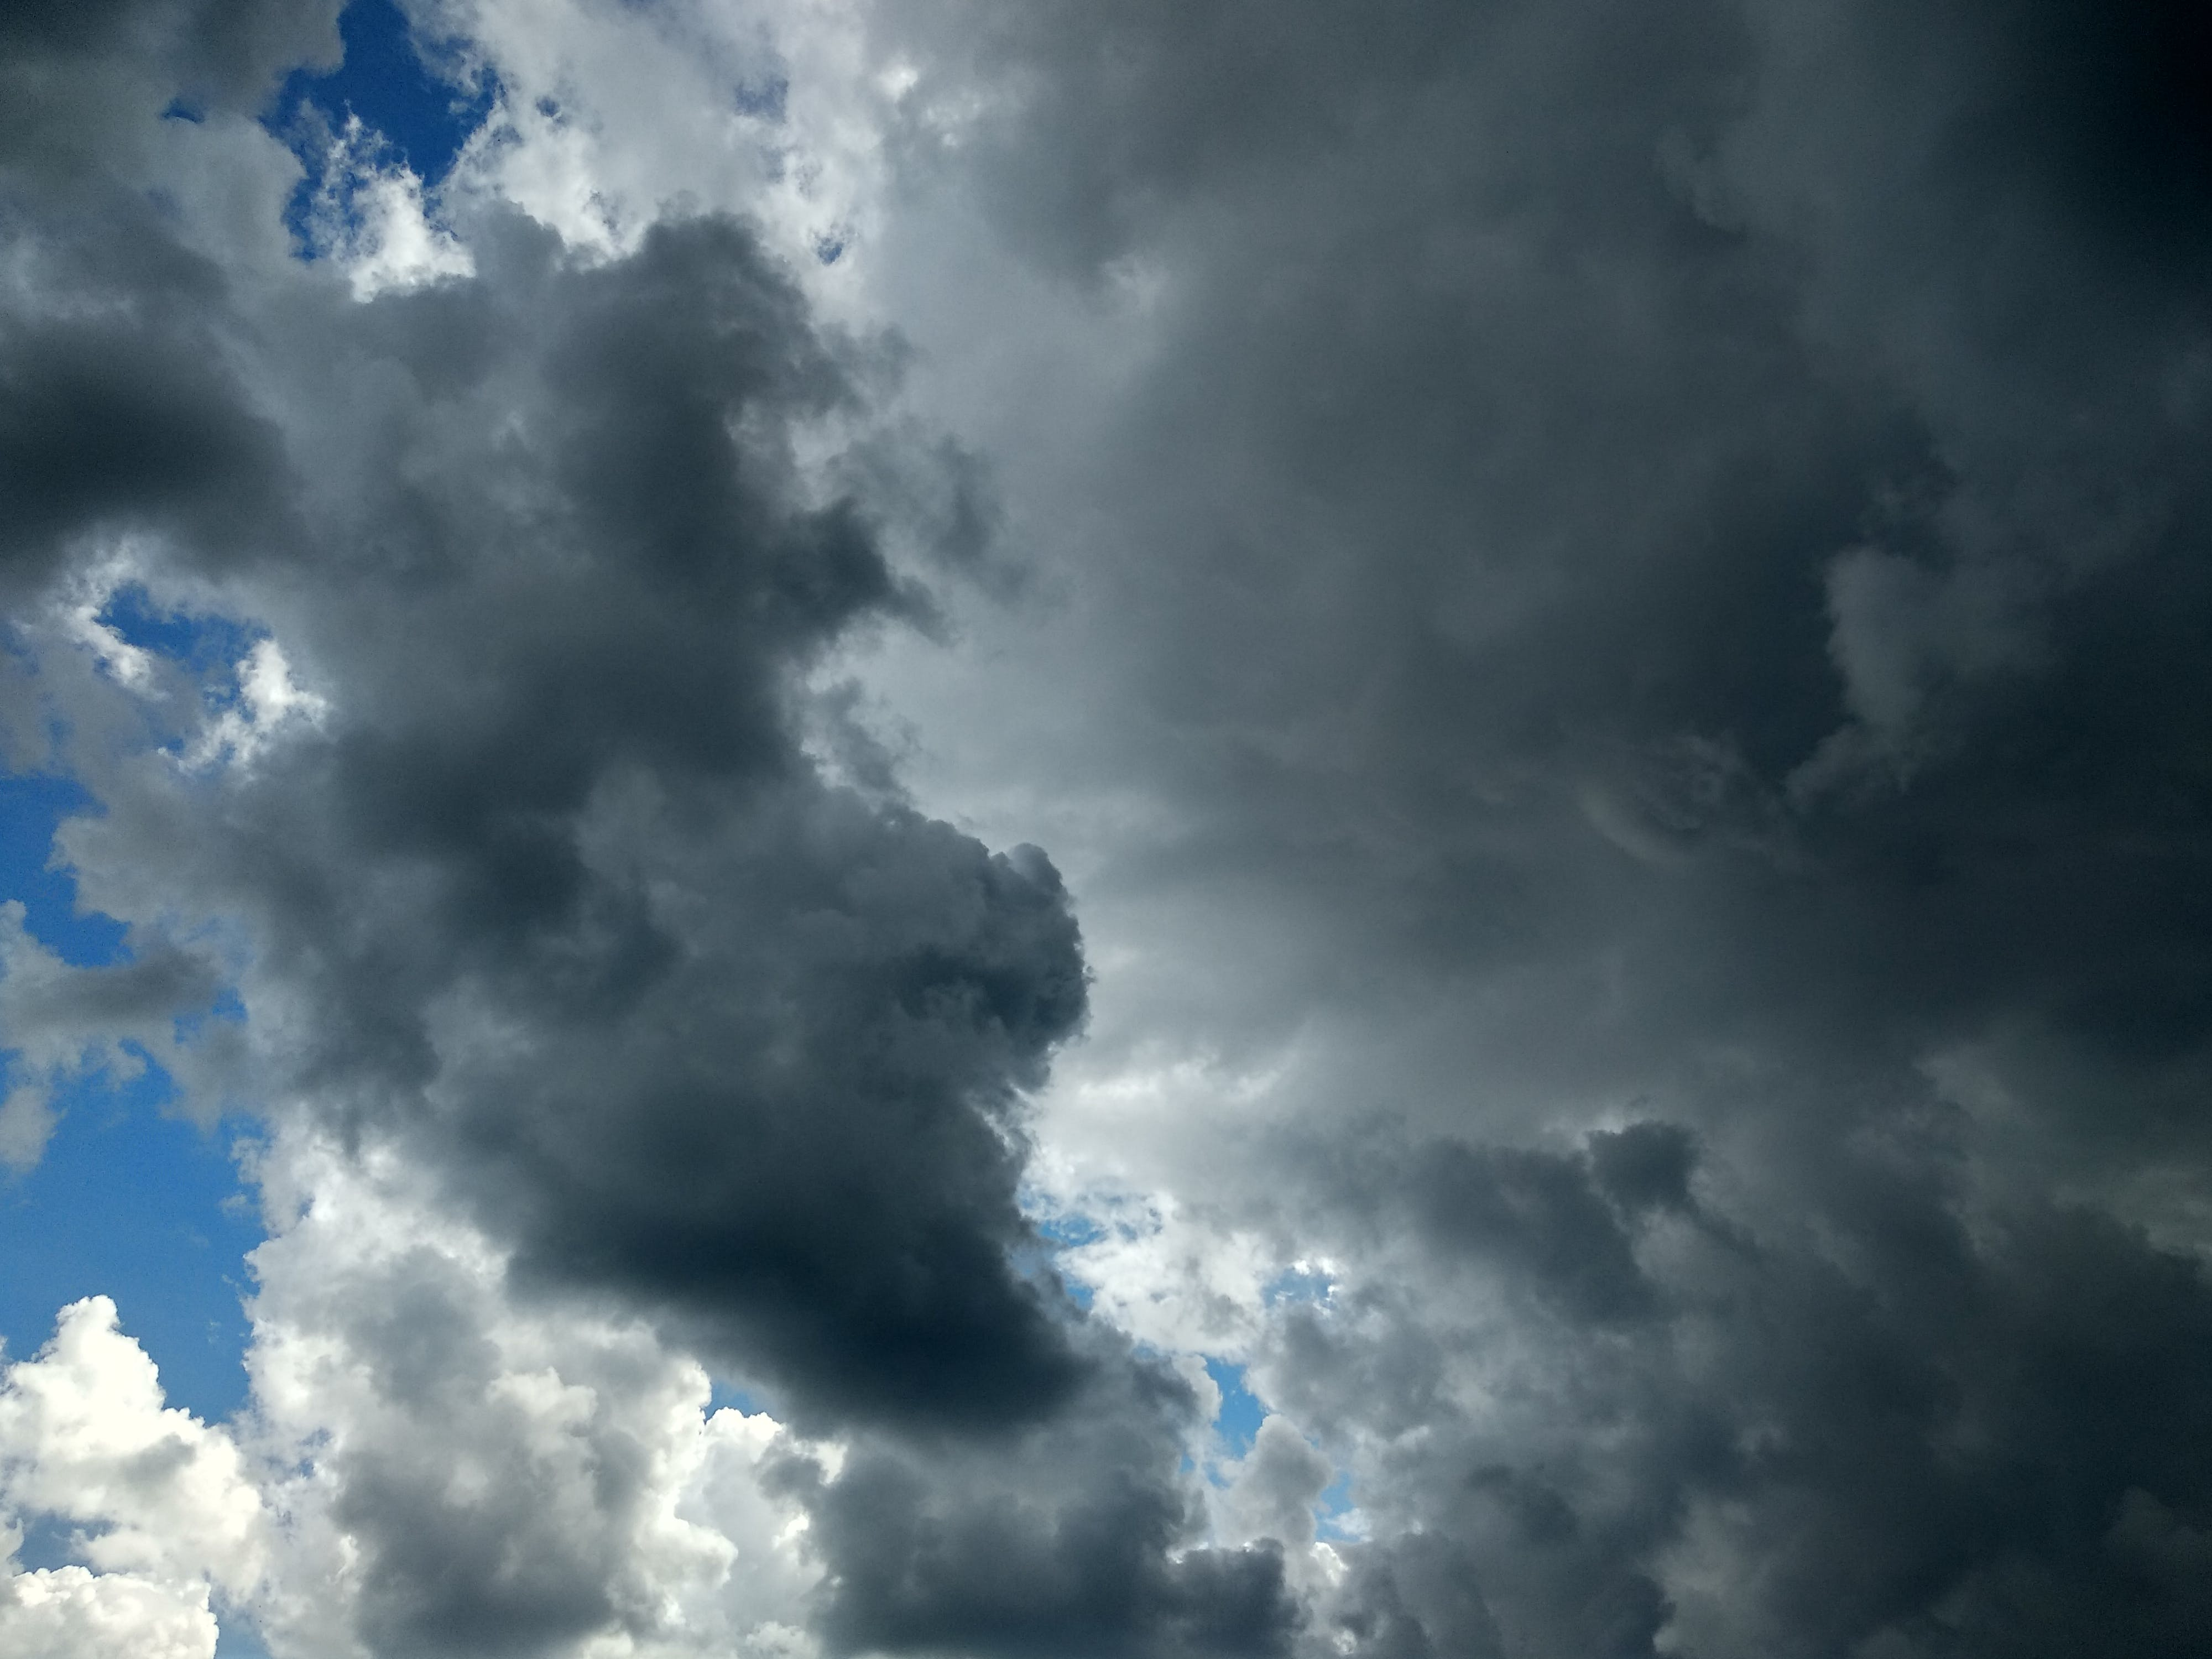 Free stock photo of bad weather, clouds, cloudy sky, dark clouds